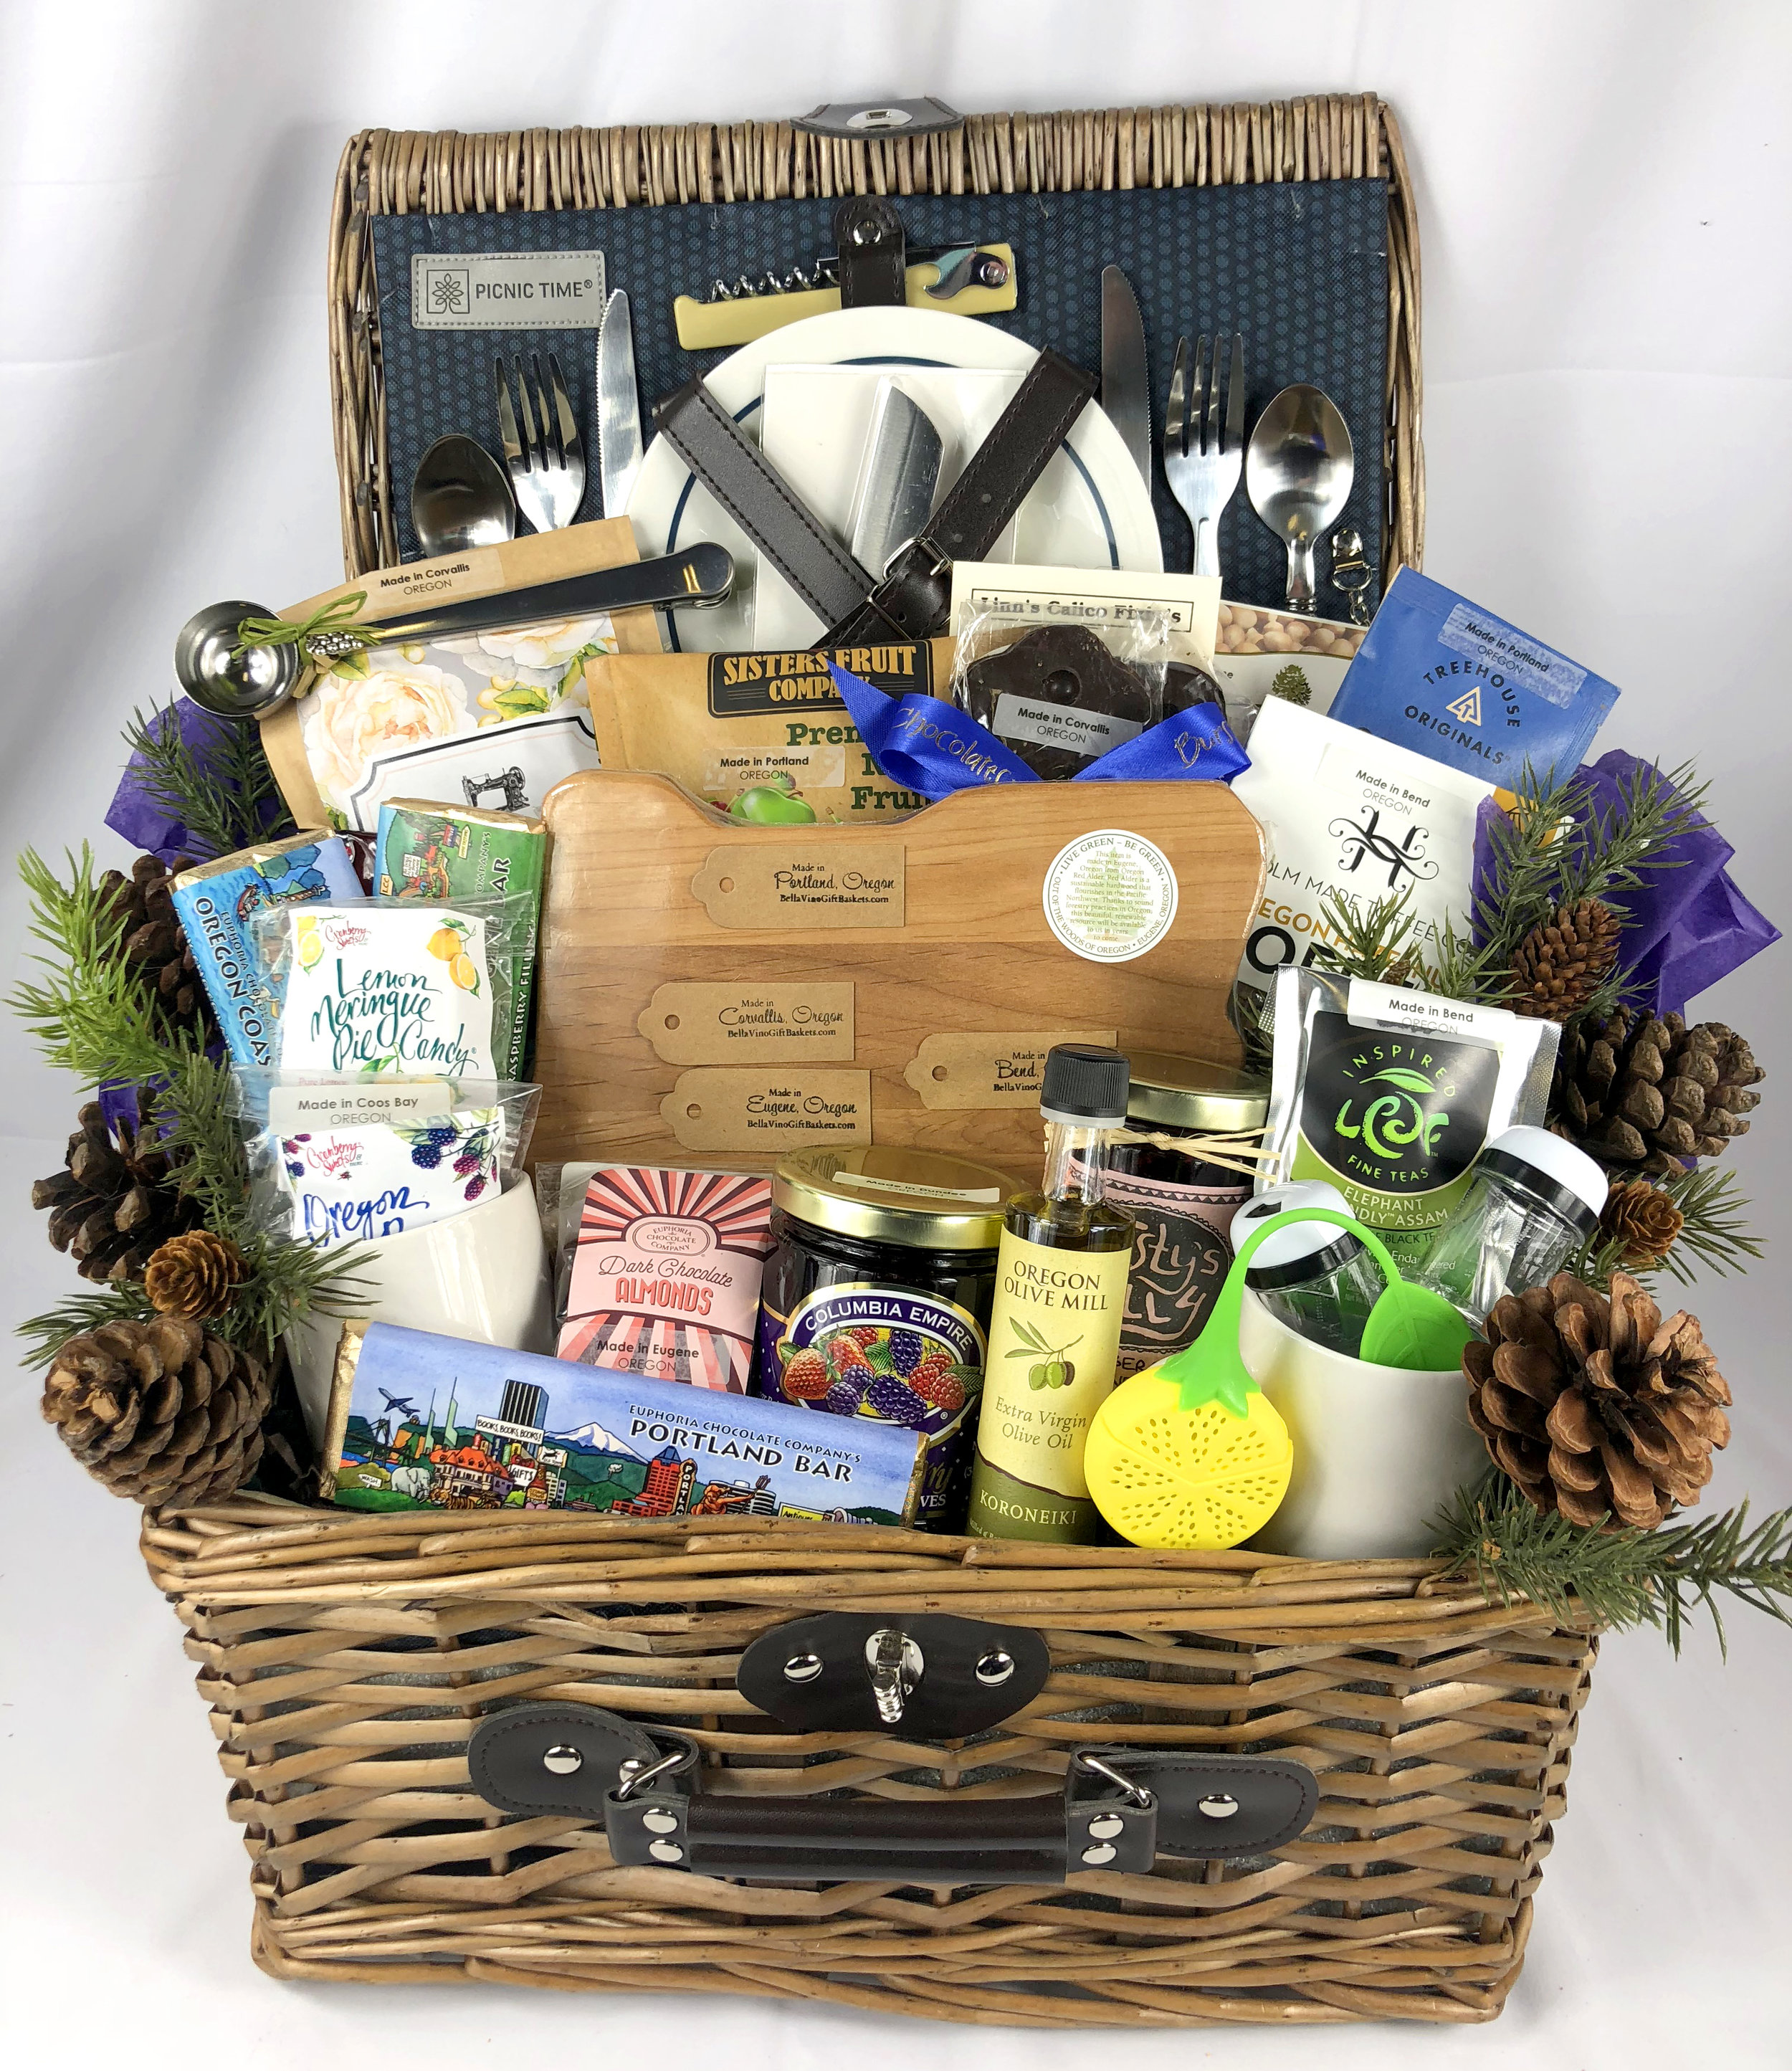 Not representative of contents, only gift basket presentation in picnic basket